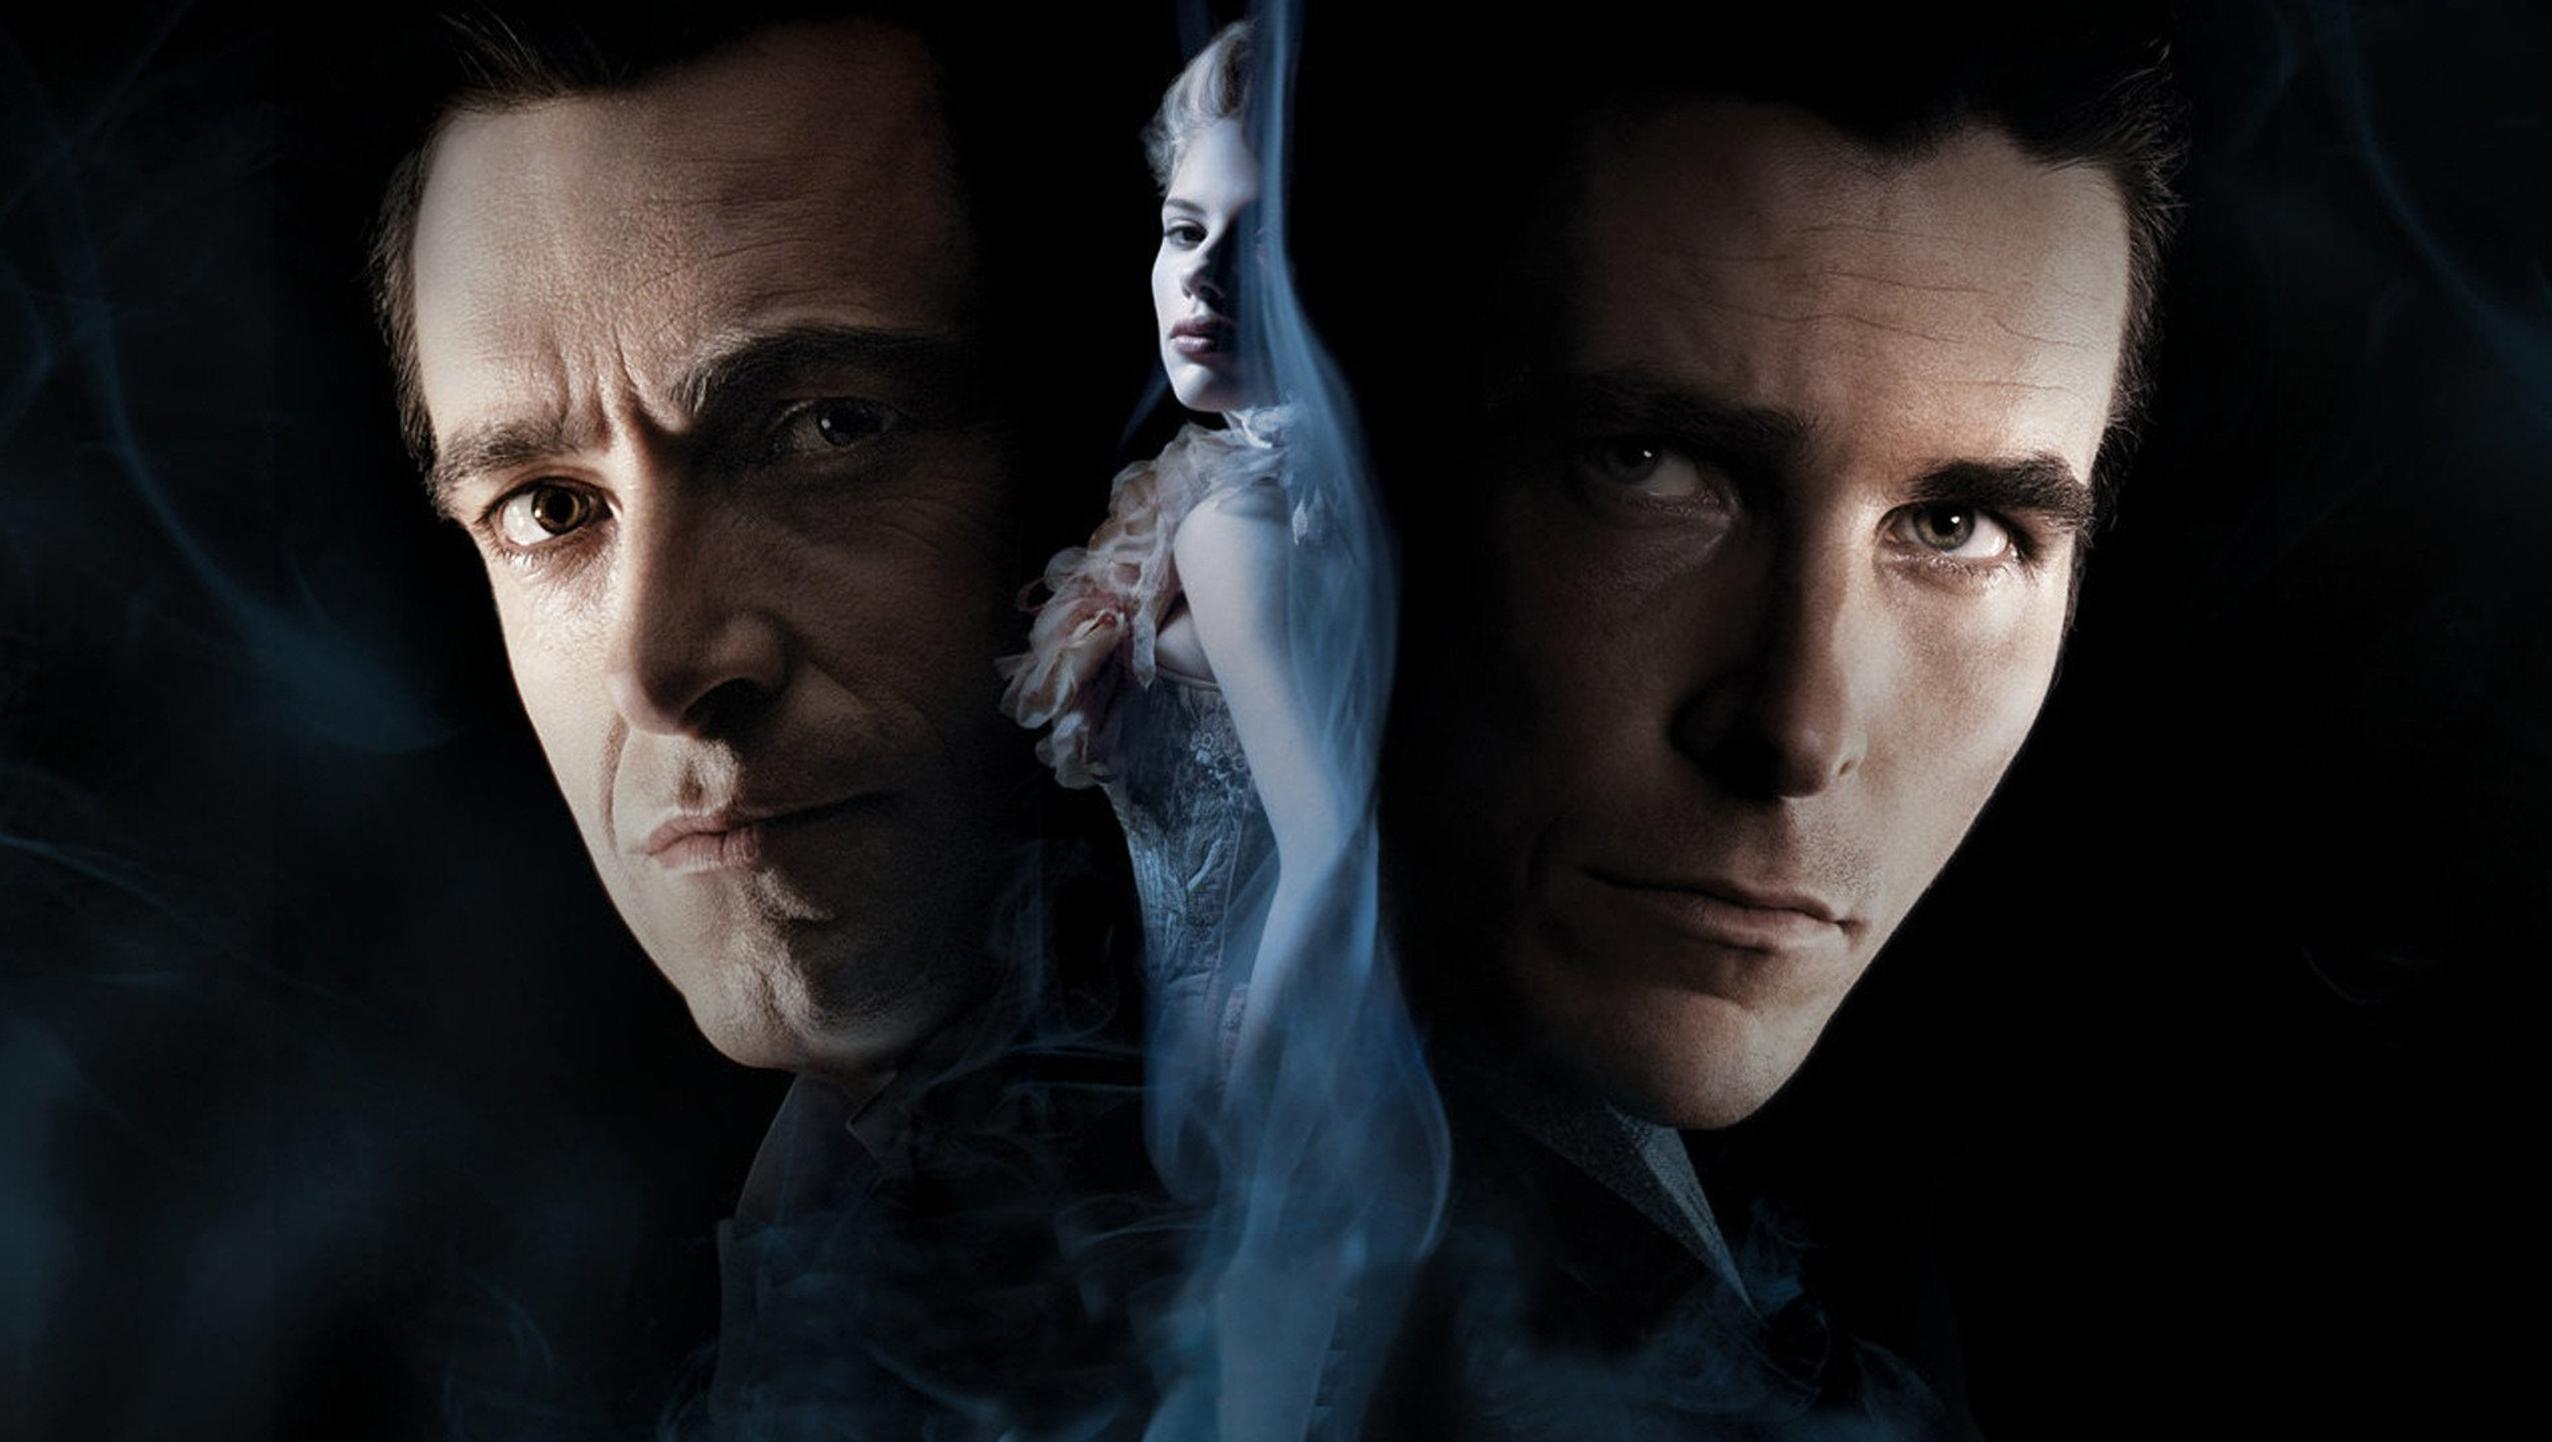 The Prestige Wallpaper 5   2552 X 1442 stmednet 2552x1442